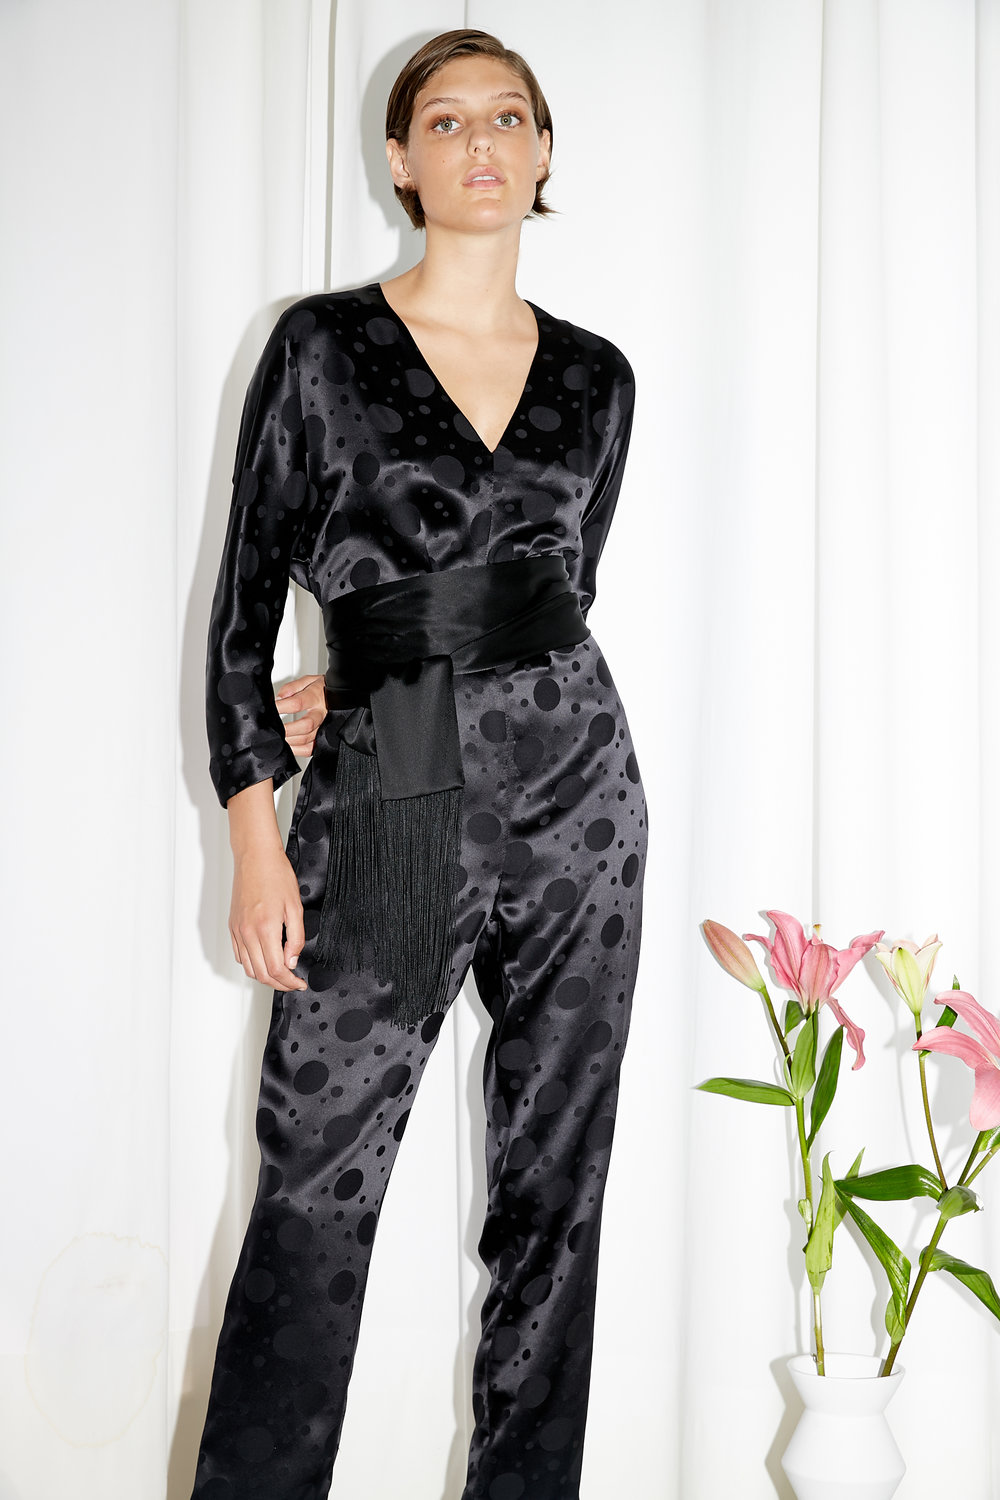 Model stands in satin V neck long sleeve top with matte polka dots and matching pants